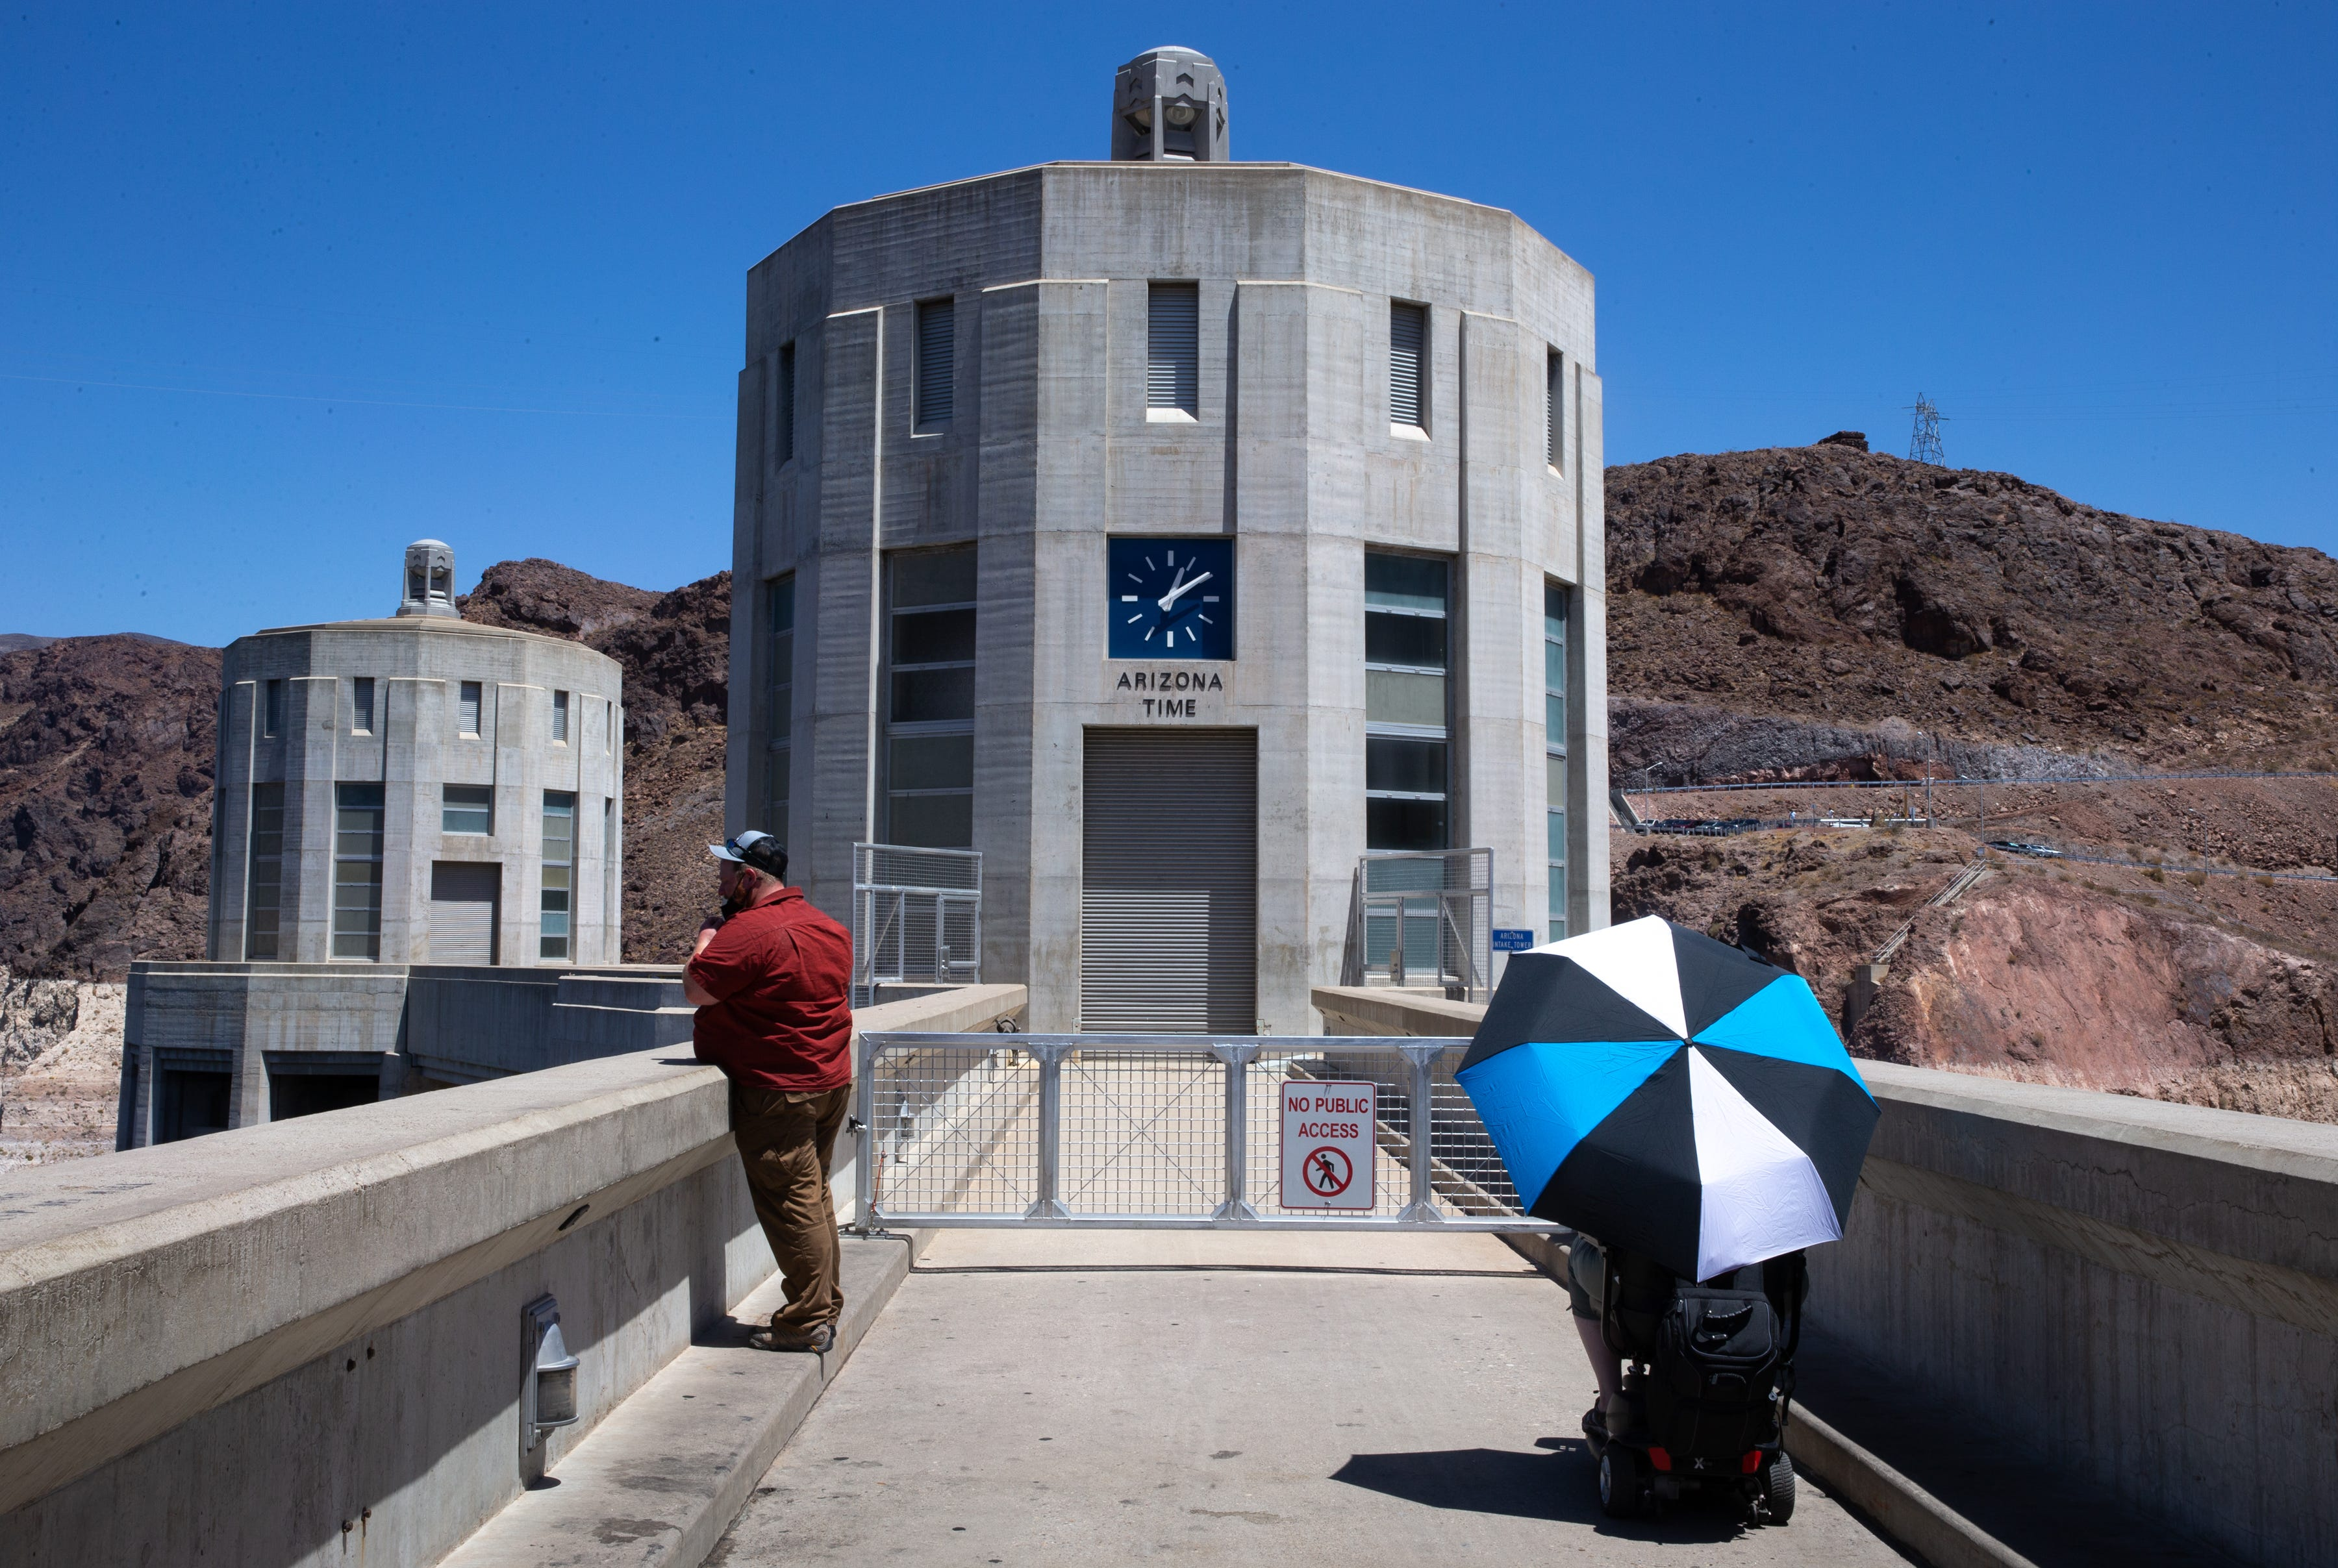 Hoover Dam, on the Arizona/Nevada border, is one of the great feats of engineering.